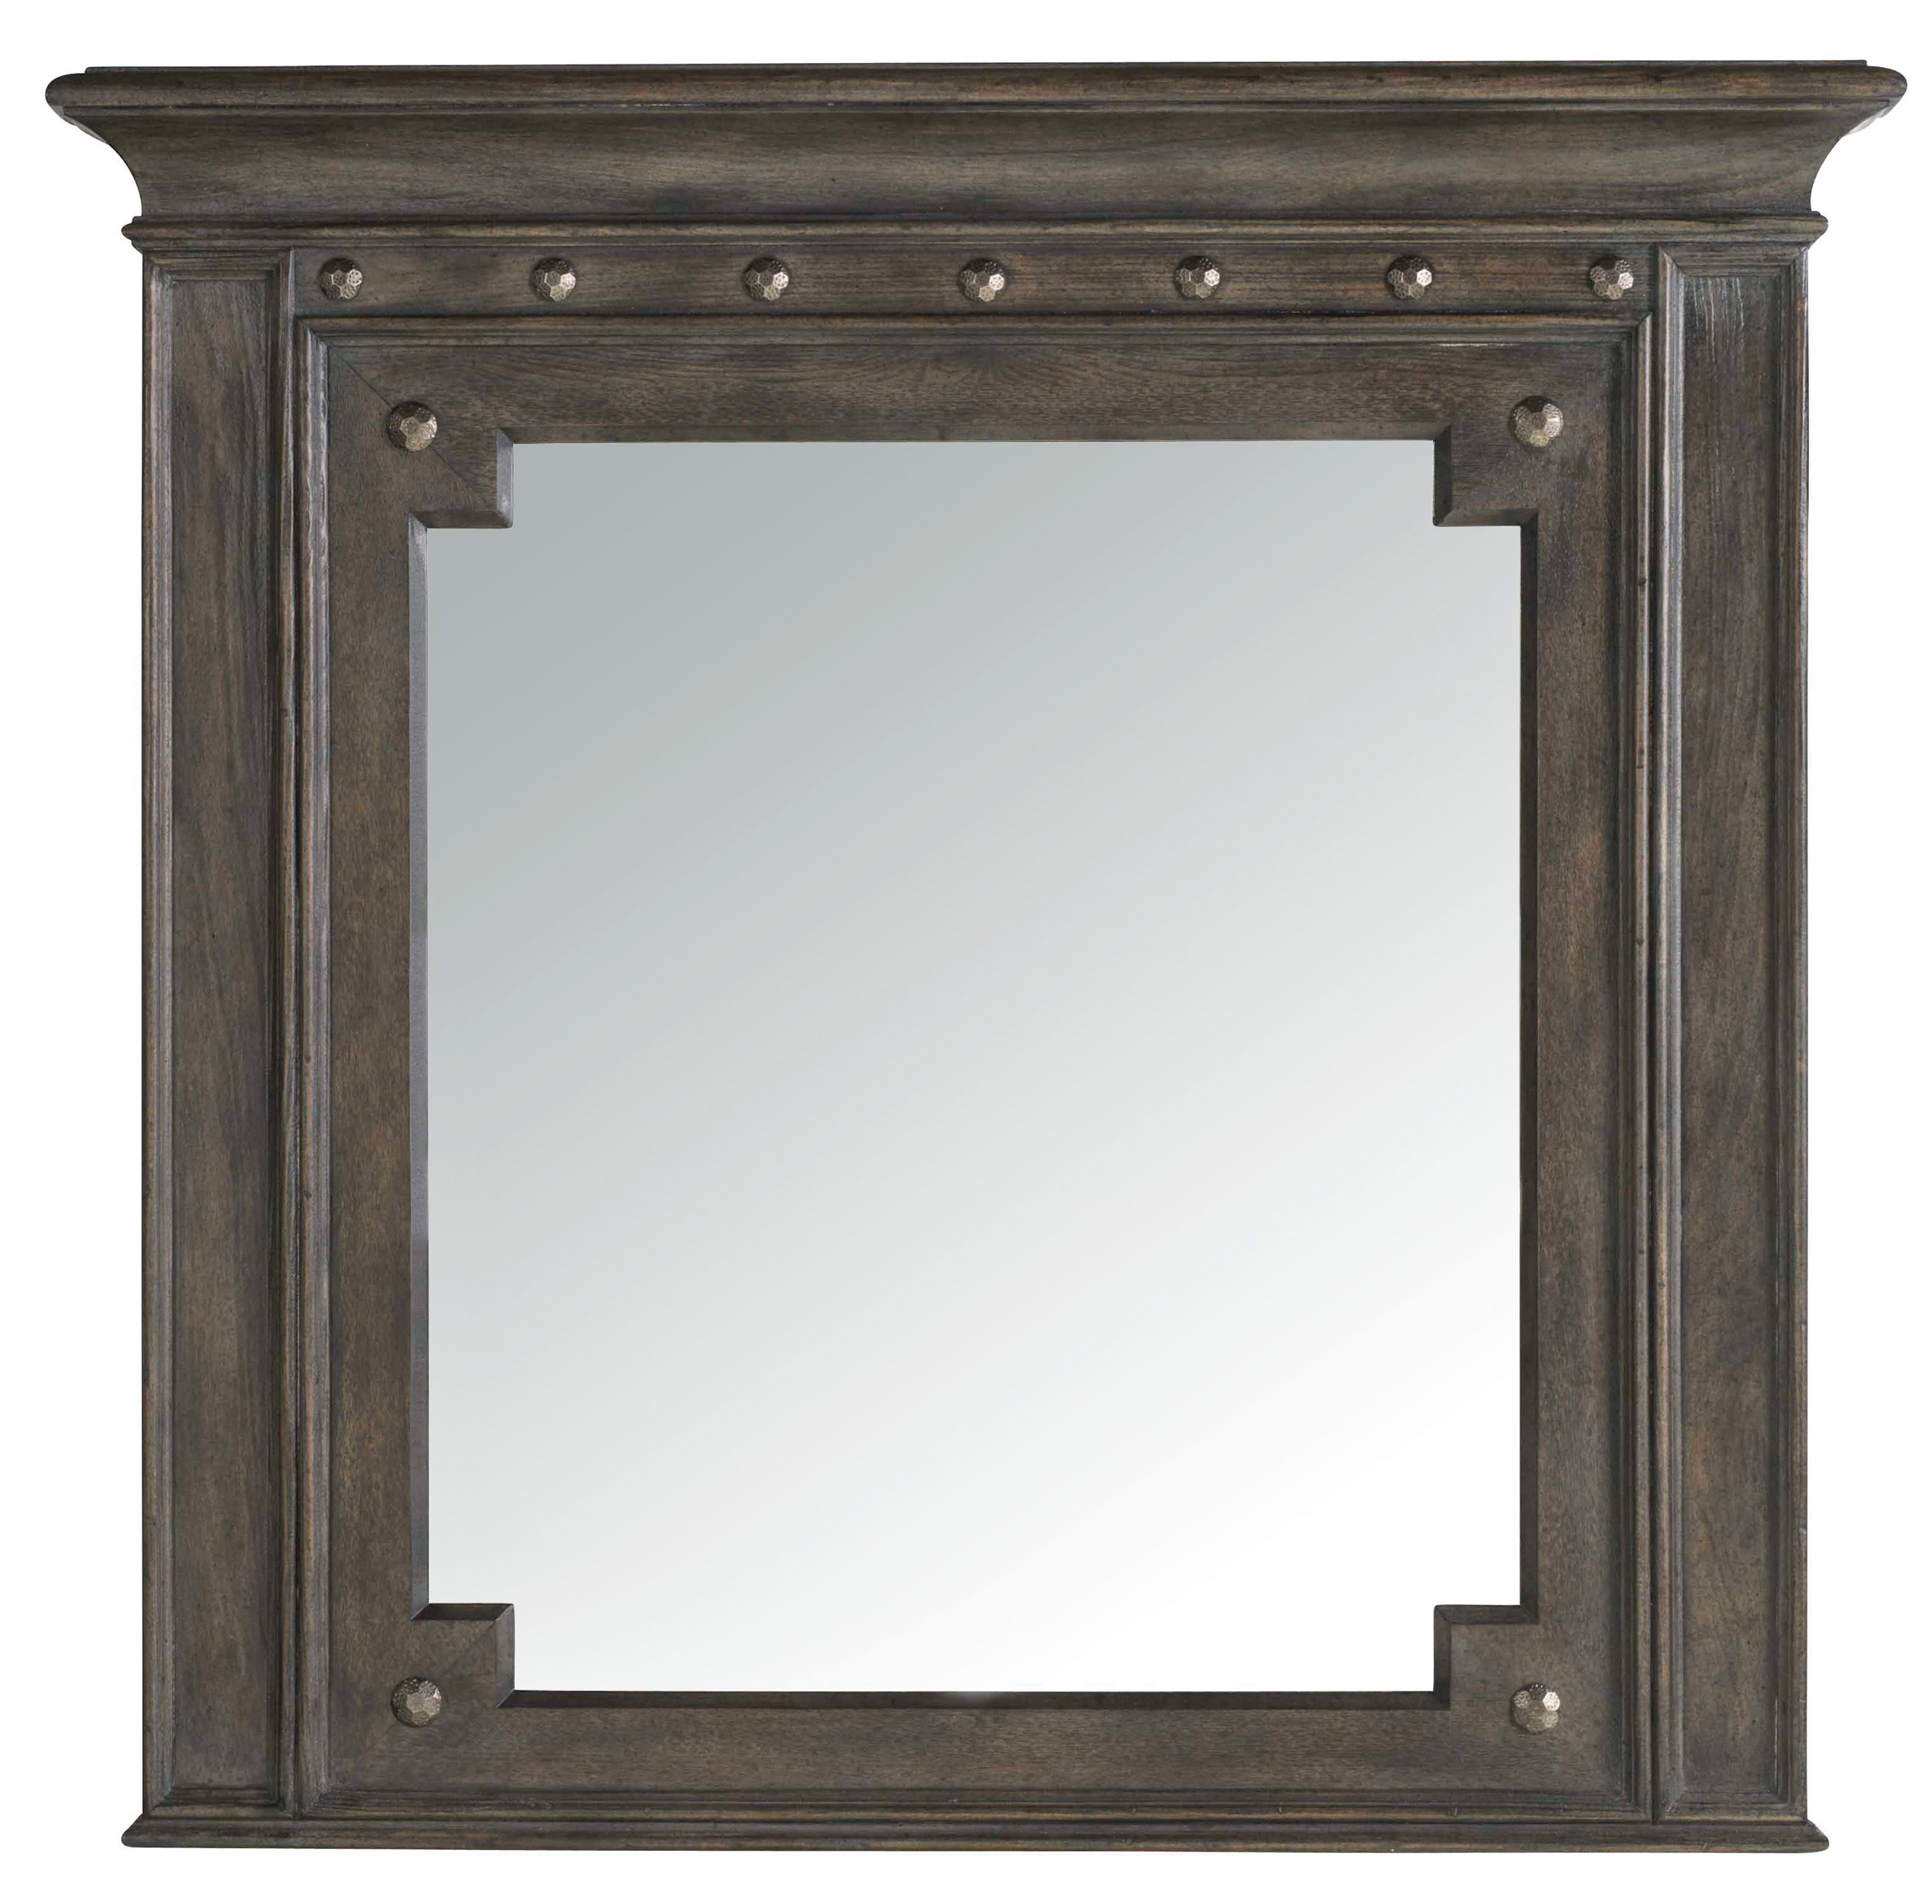 Hooker Furniture Vintage West Mirror - Item Number: 5700-90007